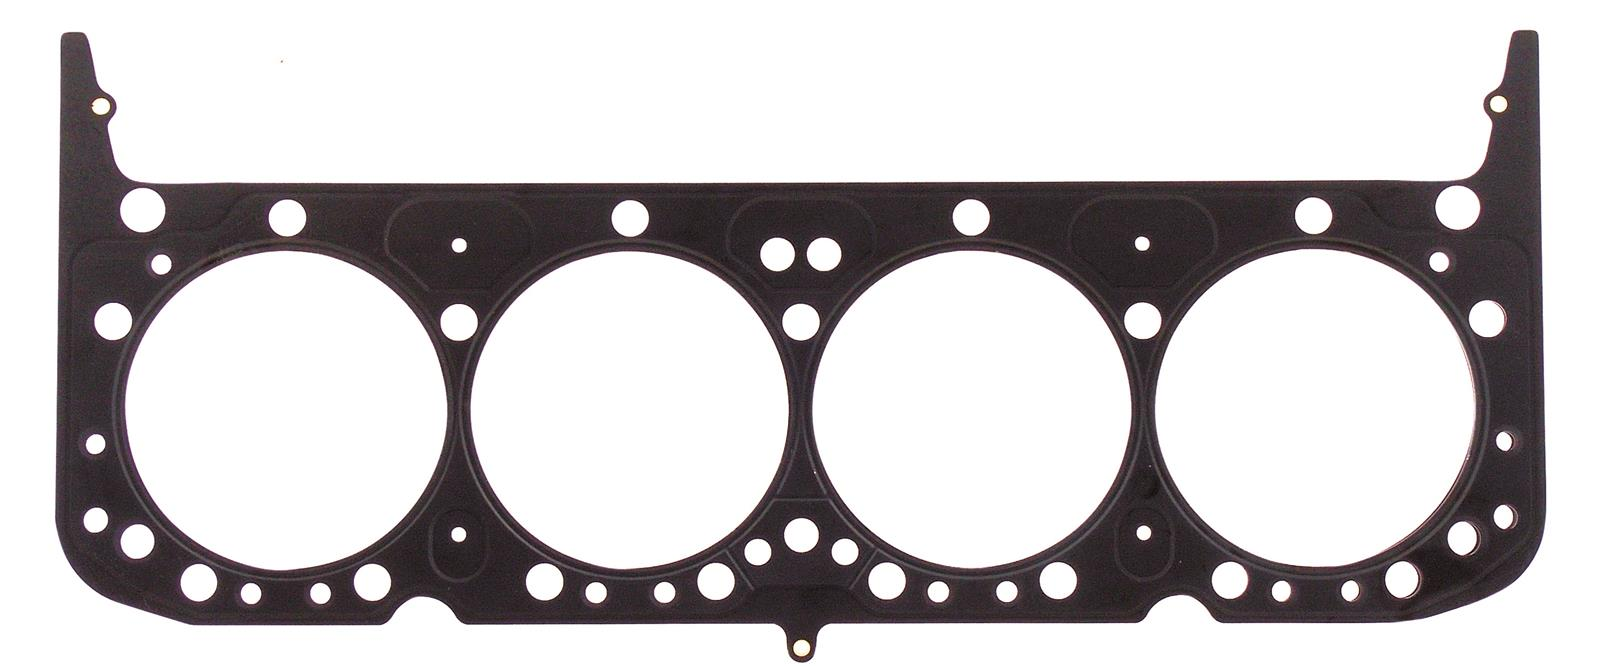 """Cometic Cylinder Head Gasket C5403-040; MLS Stainless .040/"""" 4.200/"""" for Chevy"""